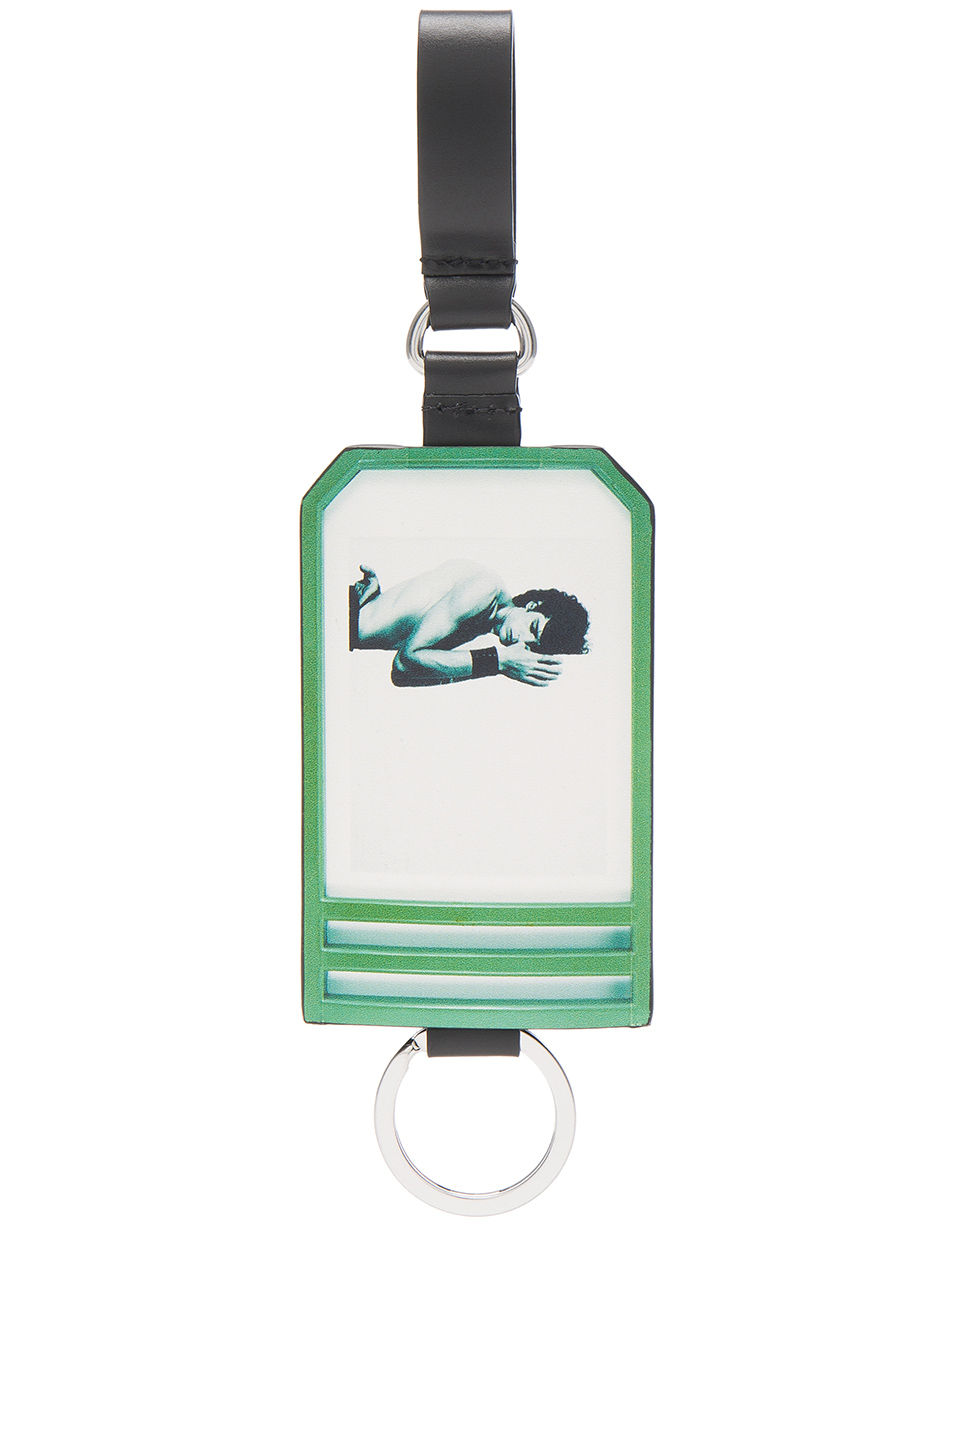 Raf Simons Self Portrait Key Holder in Green